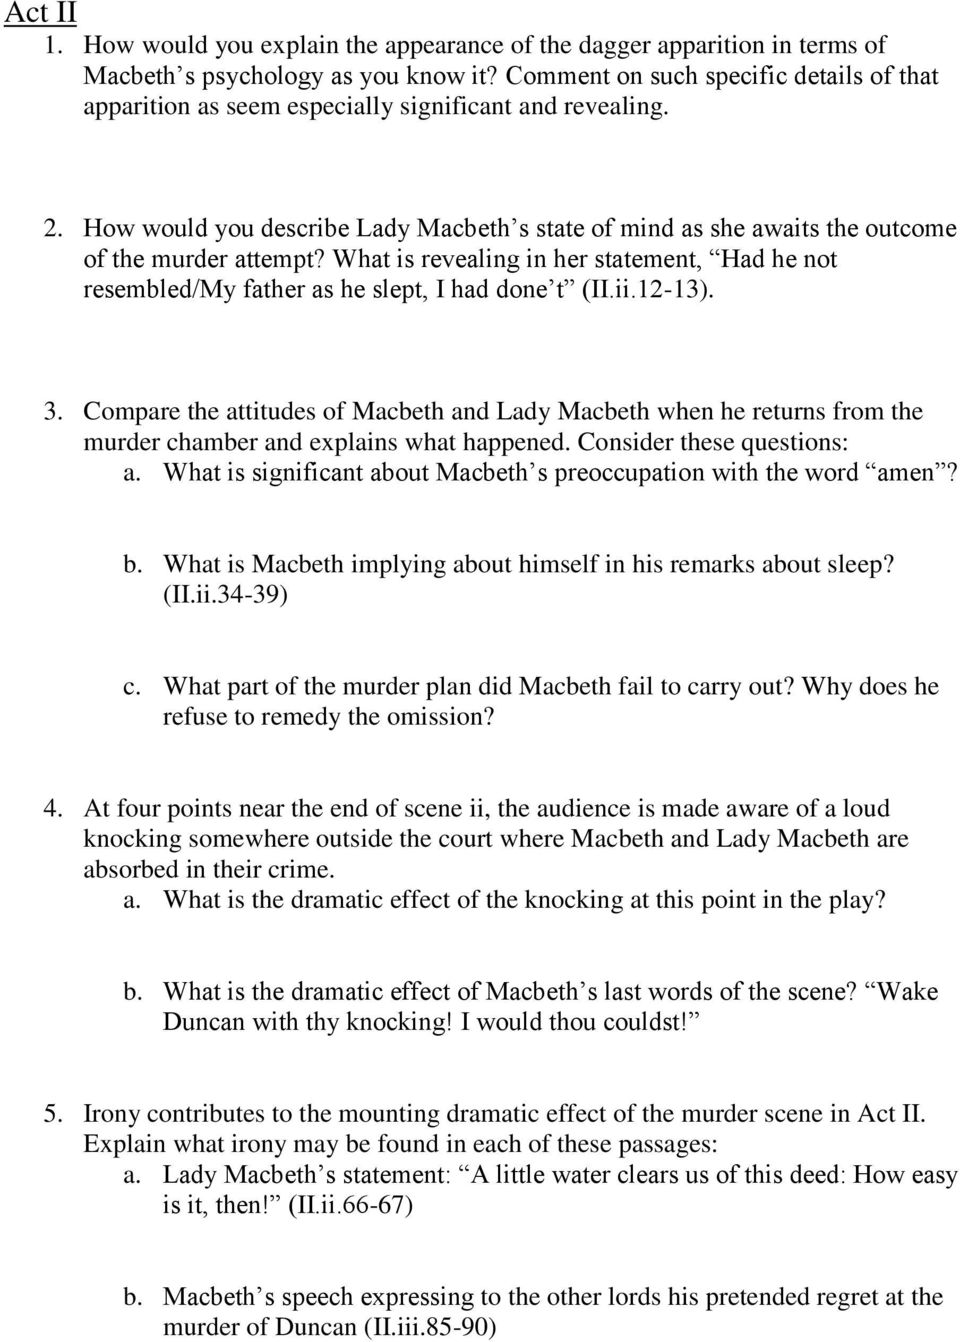 006 Macbeth Essay Questions Topics For How To Write Scholarships P Lord Of The Flies Examples Middle School Apply Texas College Applications Kill Mockingbird Common App Fahrenheit Example Surprising Pdf Grade 11 Tragic Hero Full